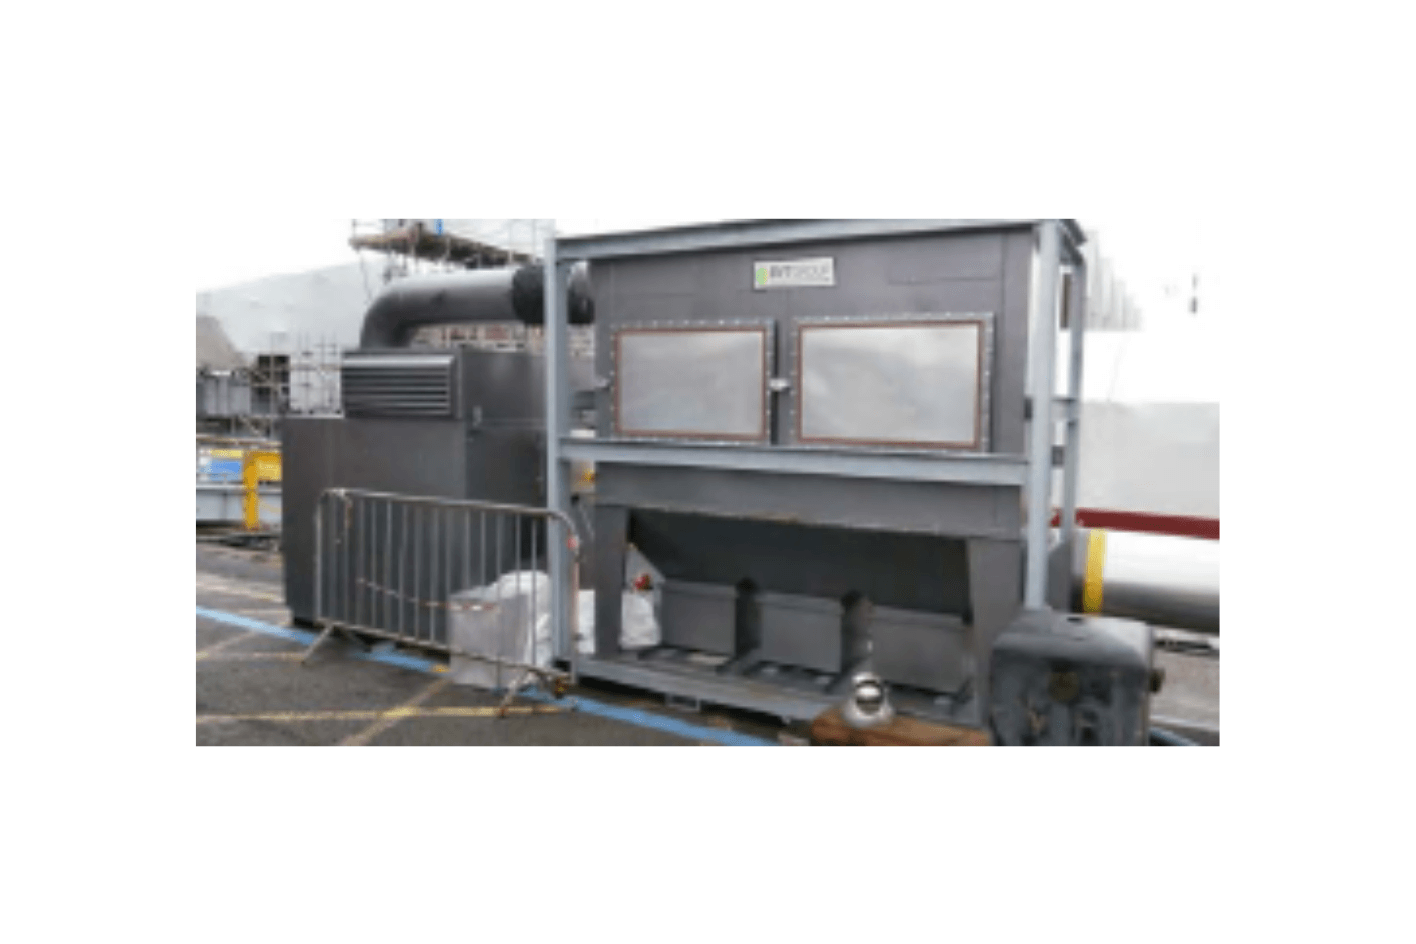 Dustex Clear Blast 900 Self-Contained Dust Extractor for Hire